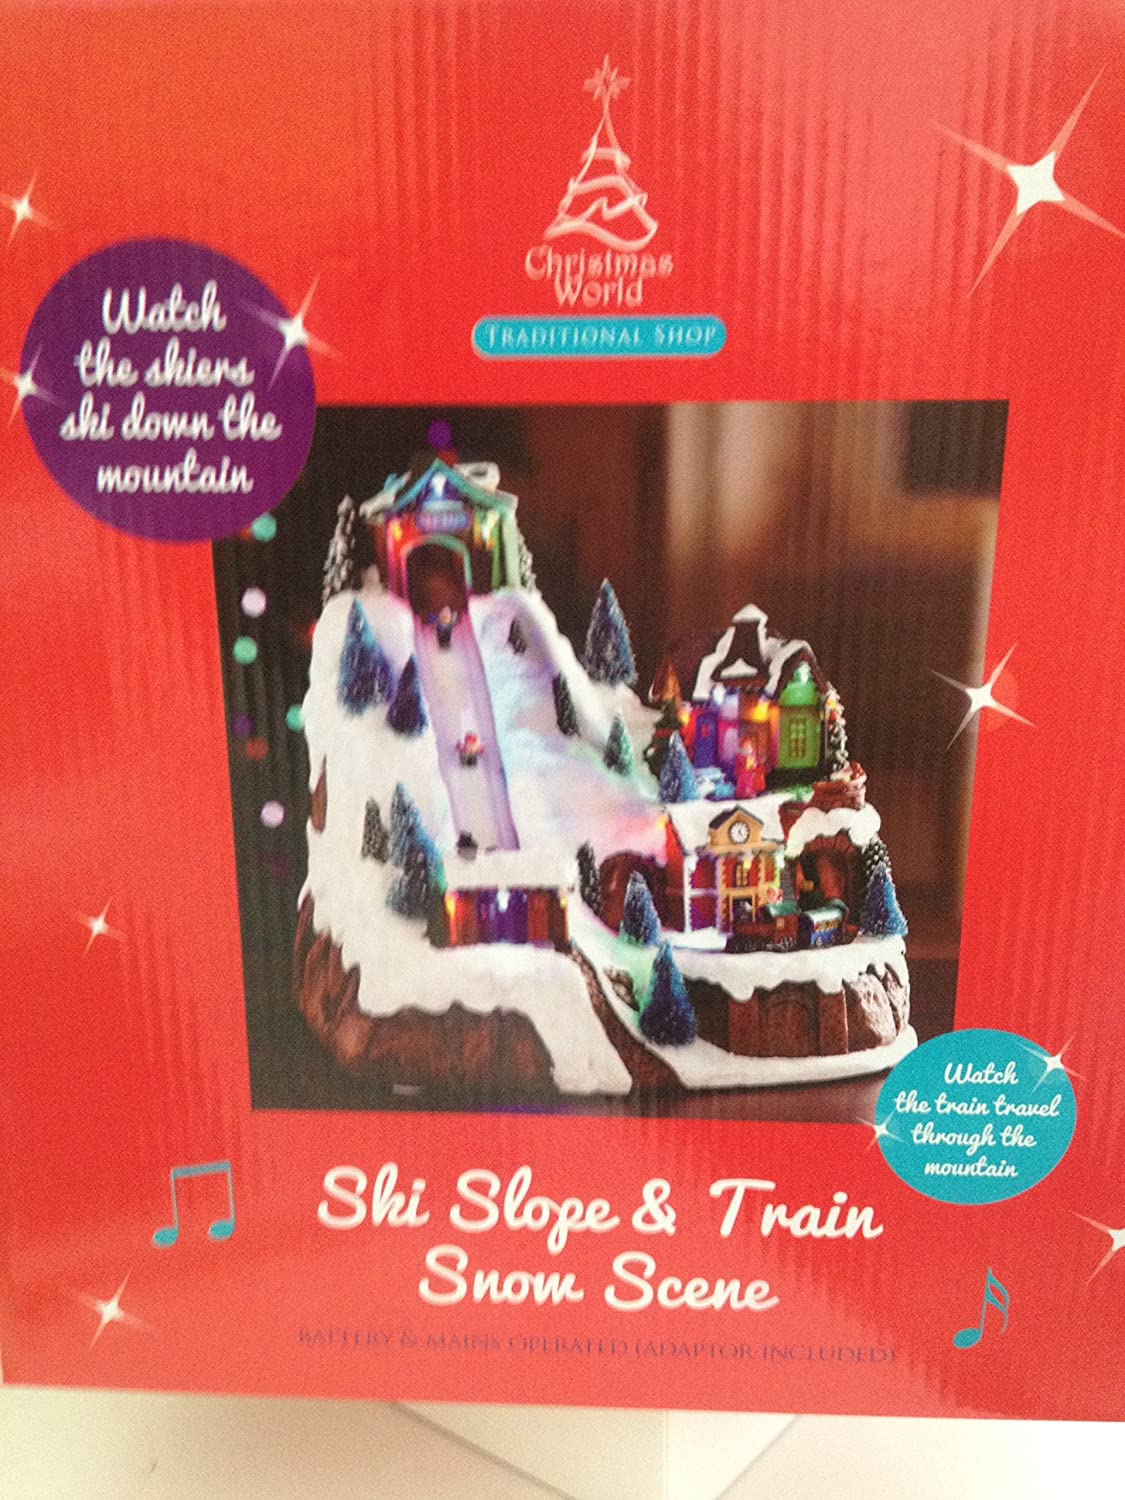 Christmas Musical Scenes Ornaments Part - 50: Ski Slope U0026 Train Snow Scene Musical Christmas Ornament: Amazon.co.uk:  Kitchen U0026 Home